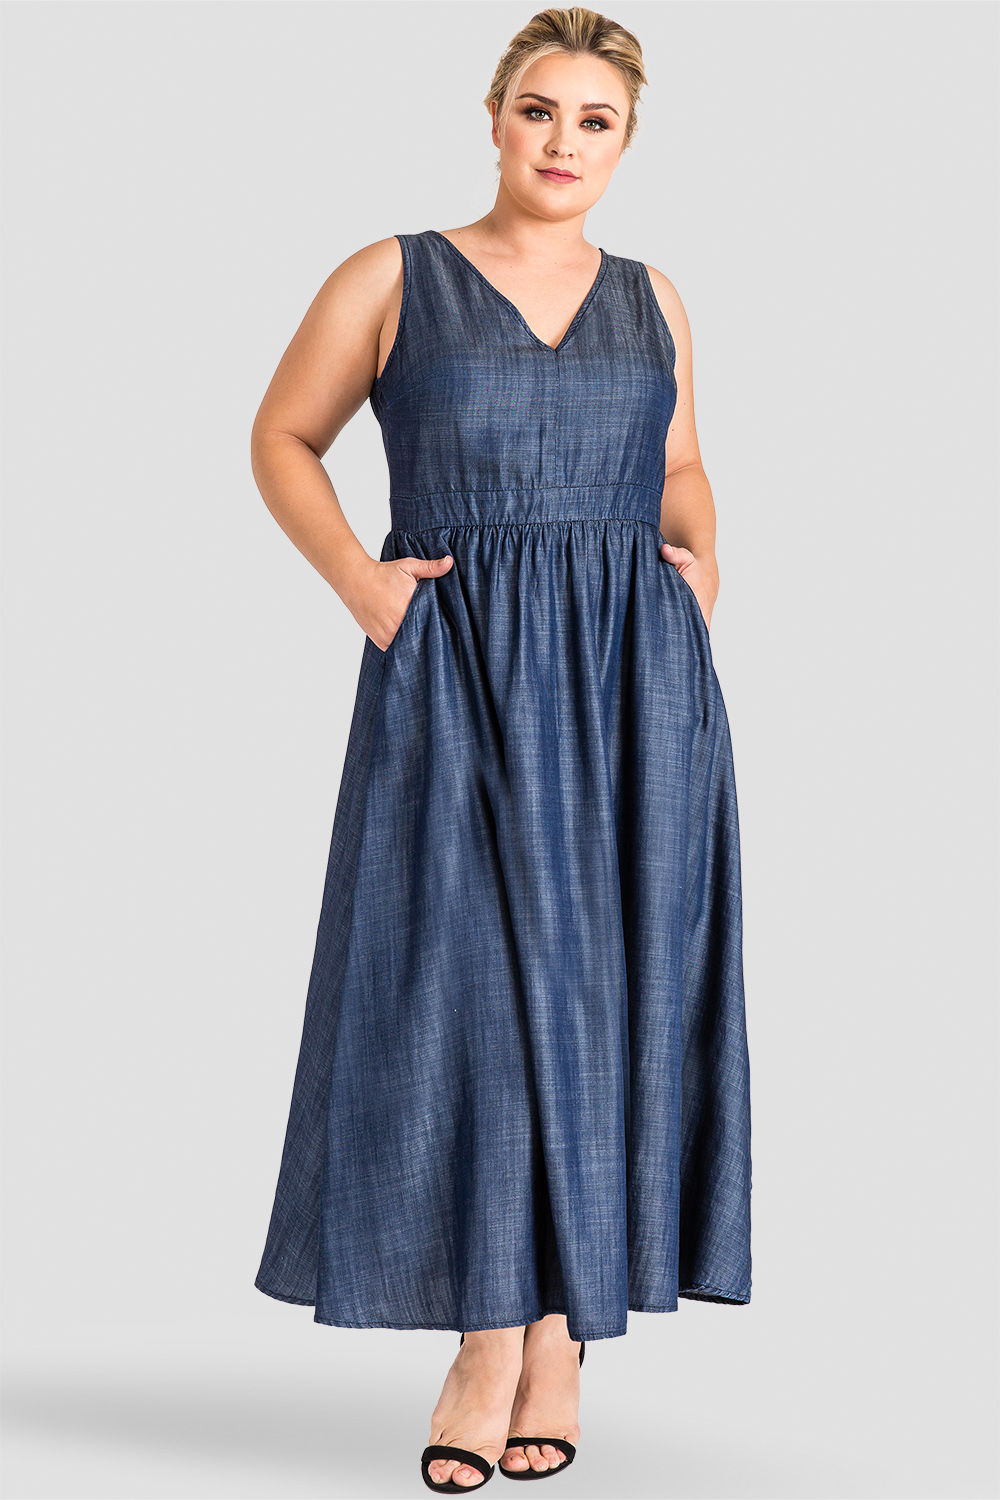 8d90eb44cb8 Standards   Practices - Standards   Practices Plus Size Indigo A-Line  Tencel Denim Maxi Dress - Nimah